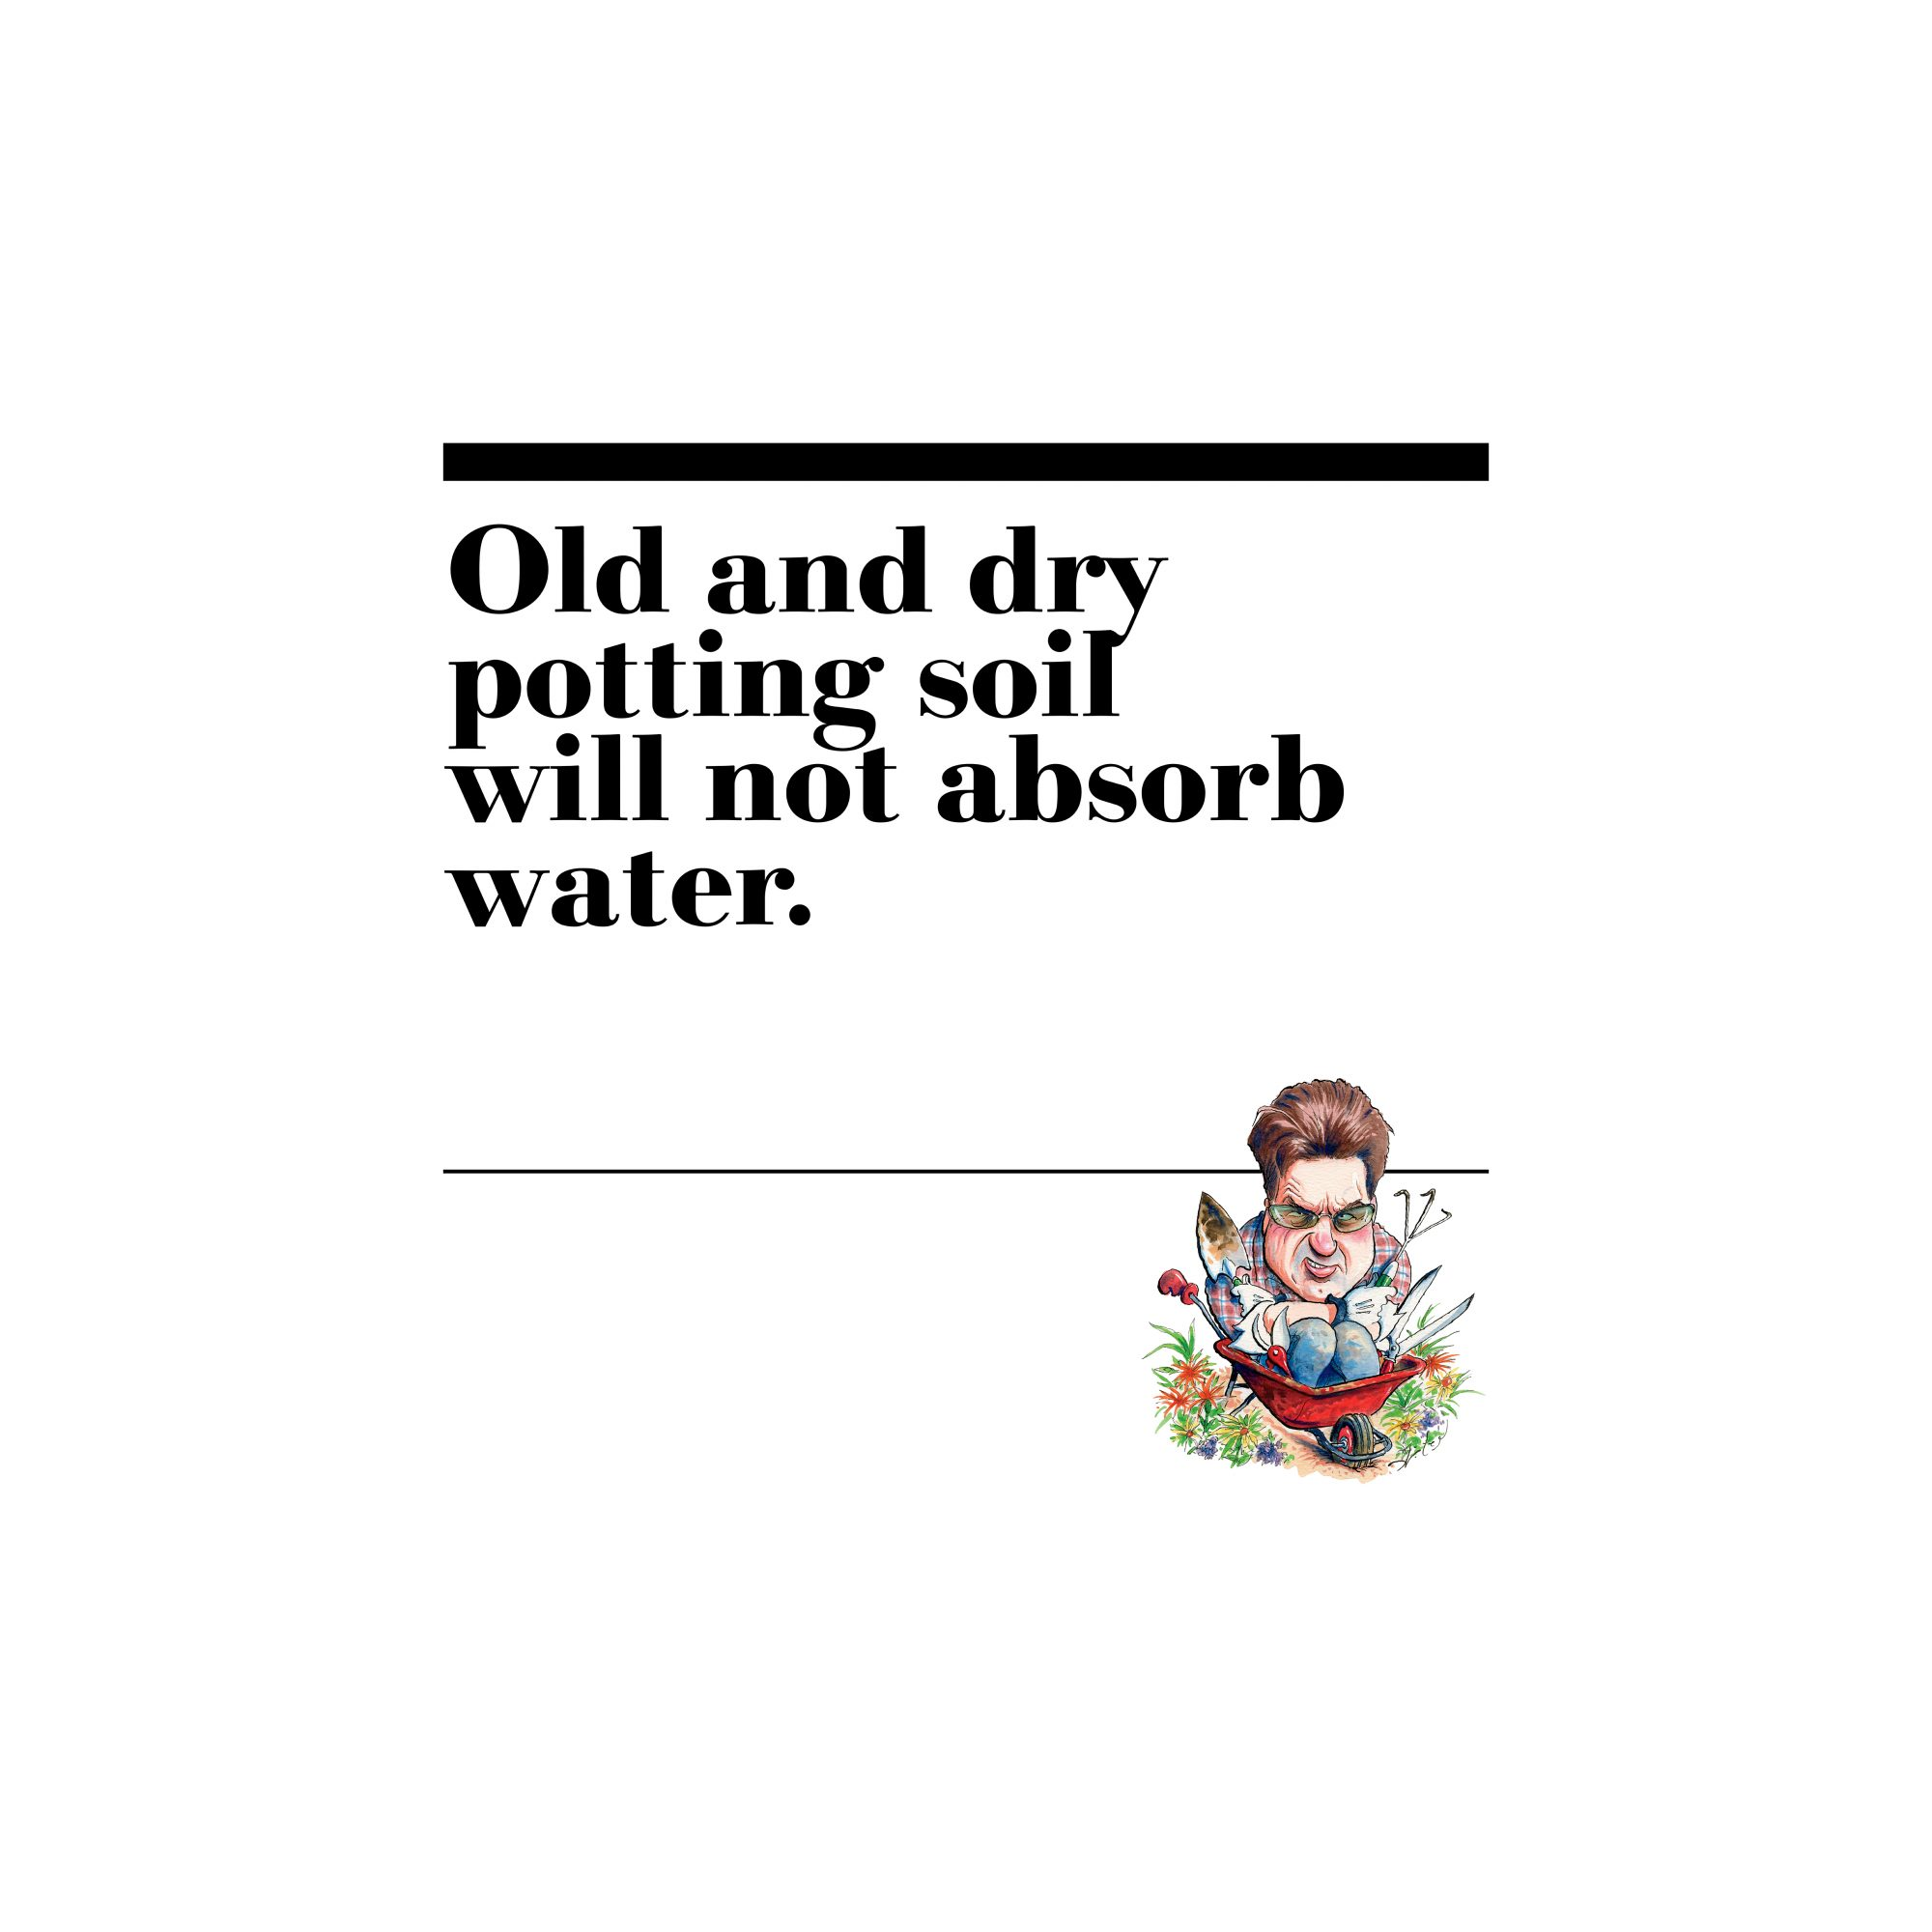 47. Old and dry potting soil will not absorb water.